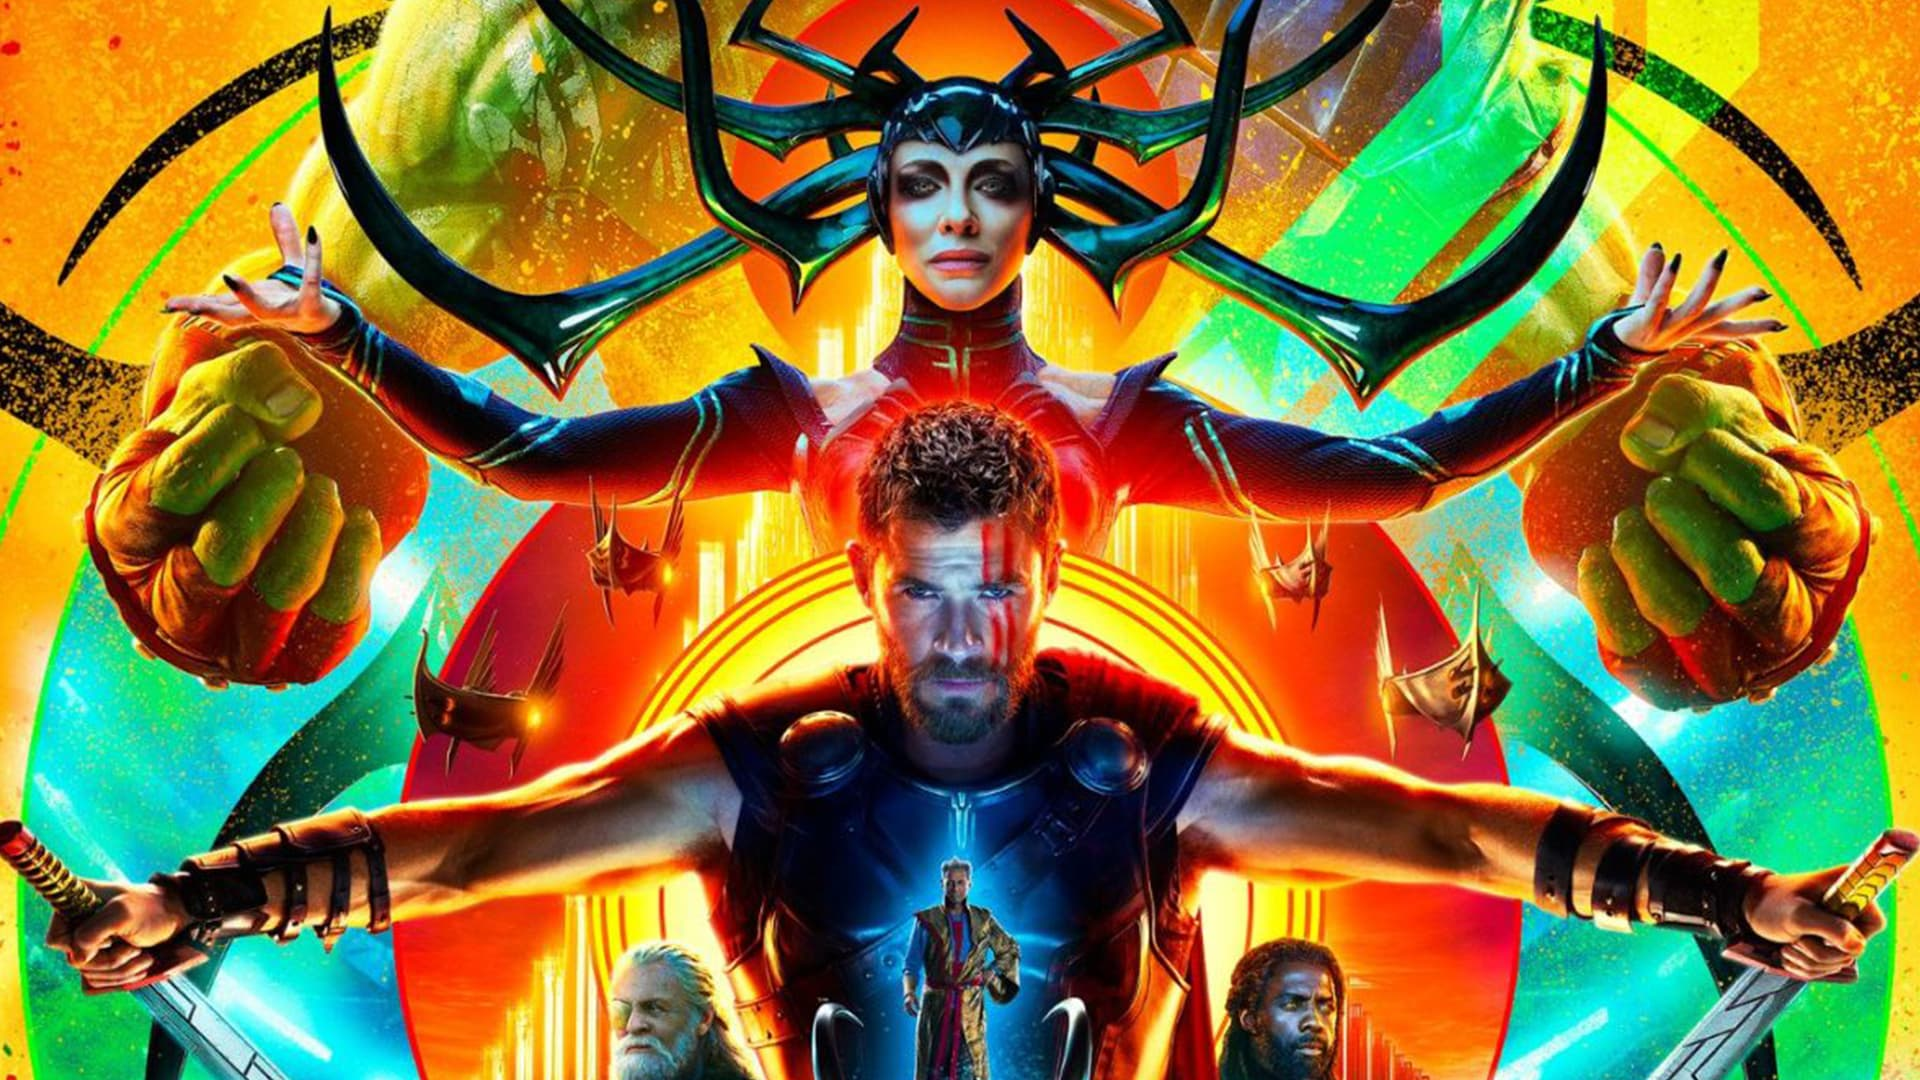 Thor: Ragnarok Could Be Director Taika Waititi at His Best 1